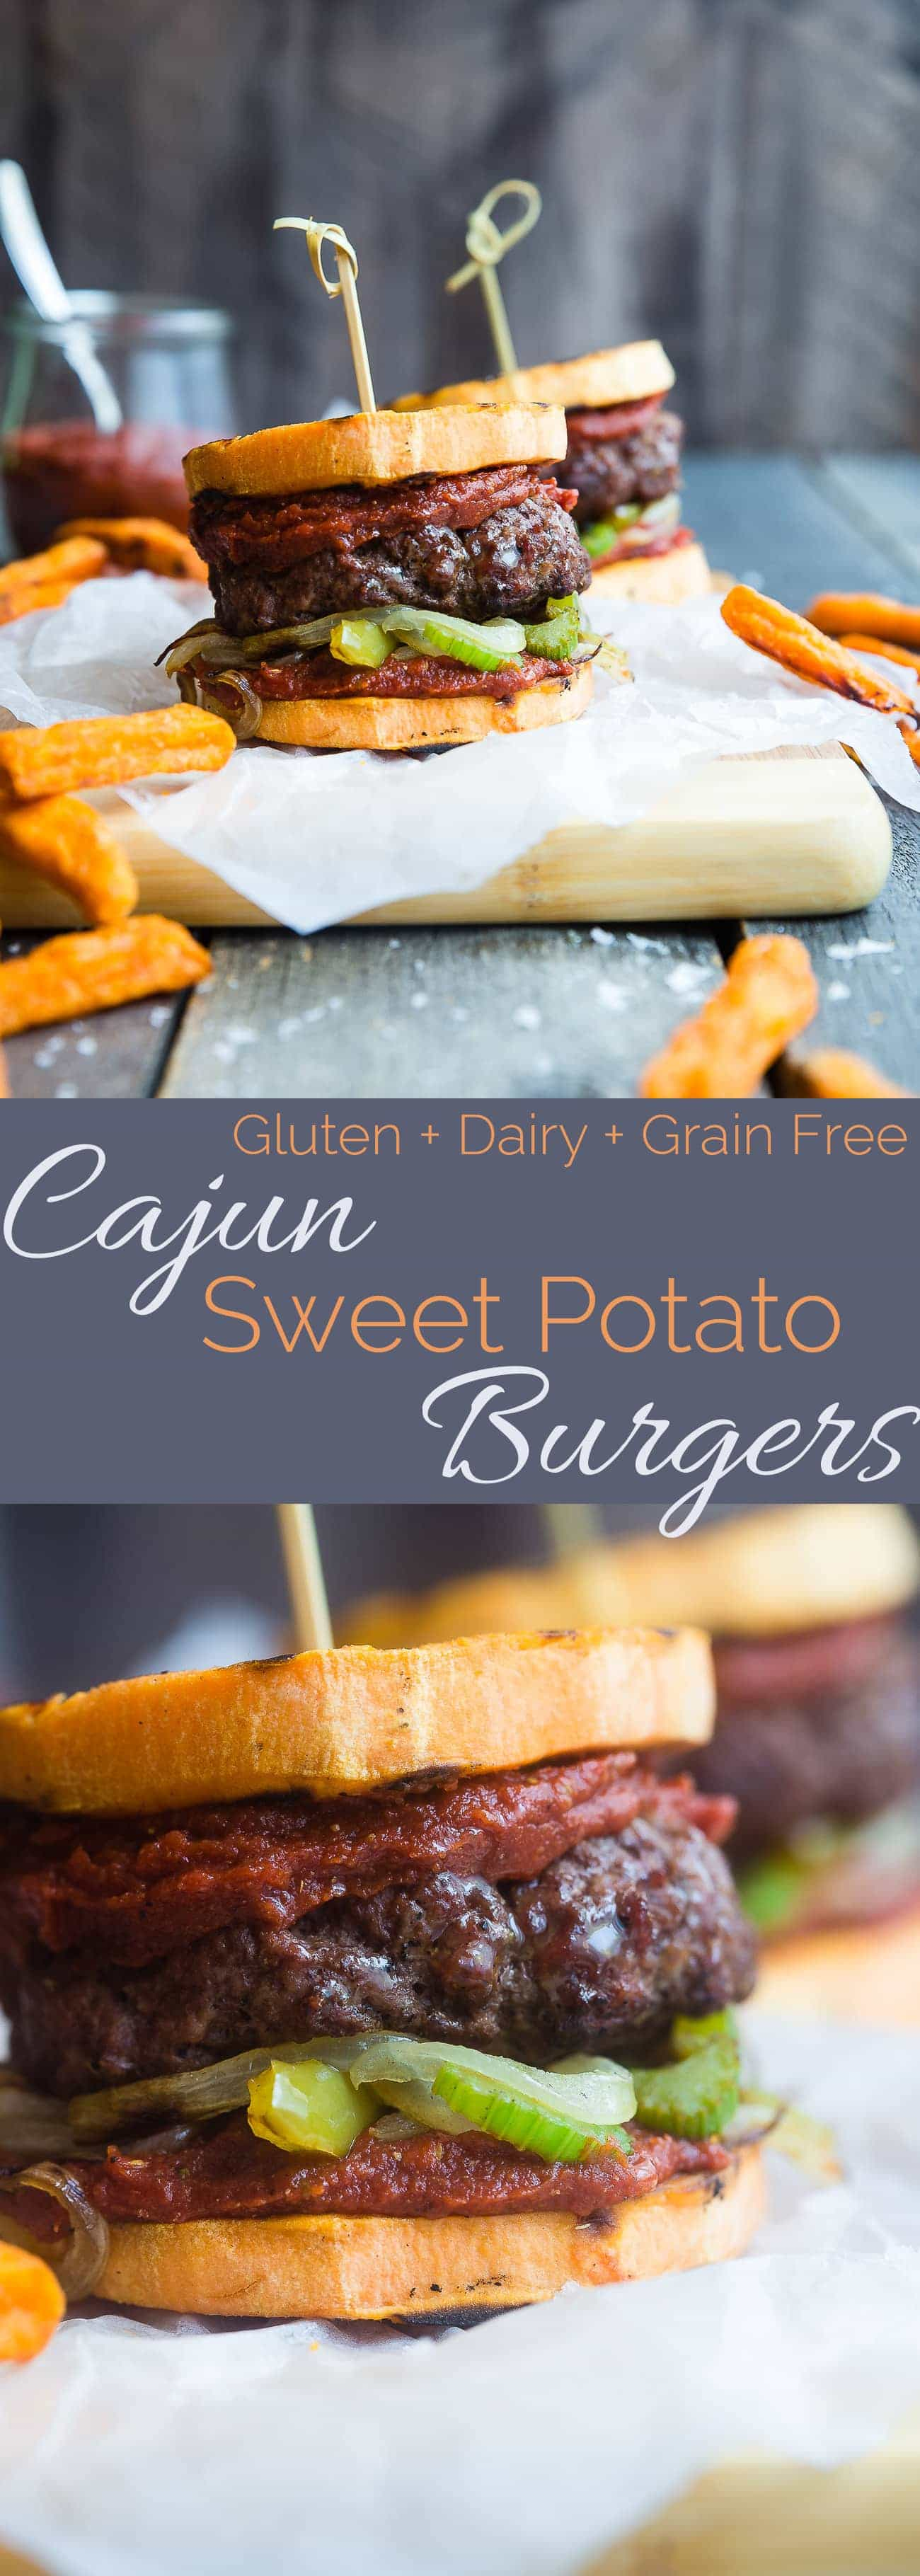 cajun burgers with sweet potato buns food faith fitness